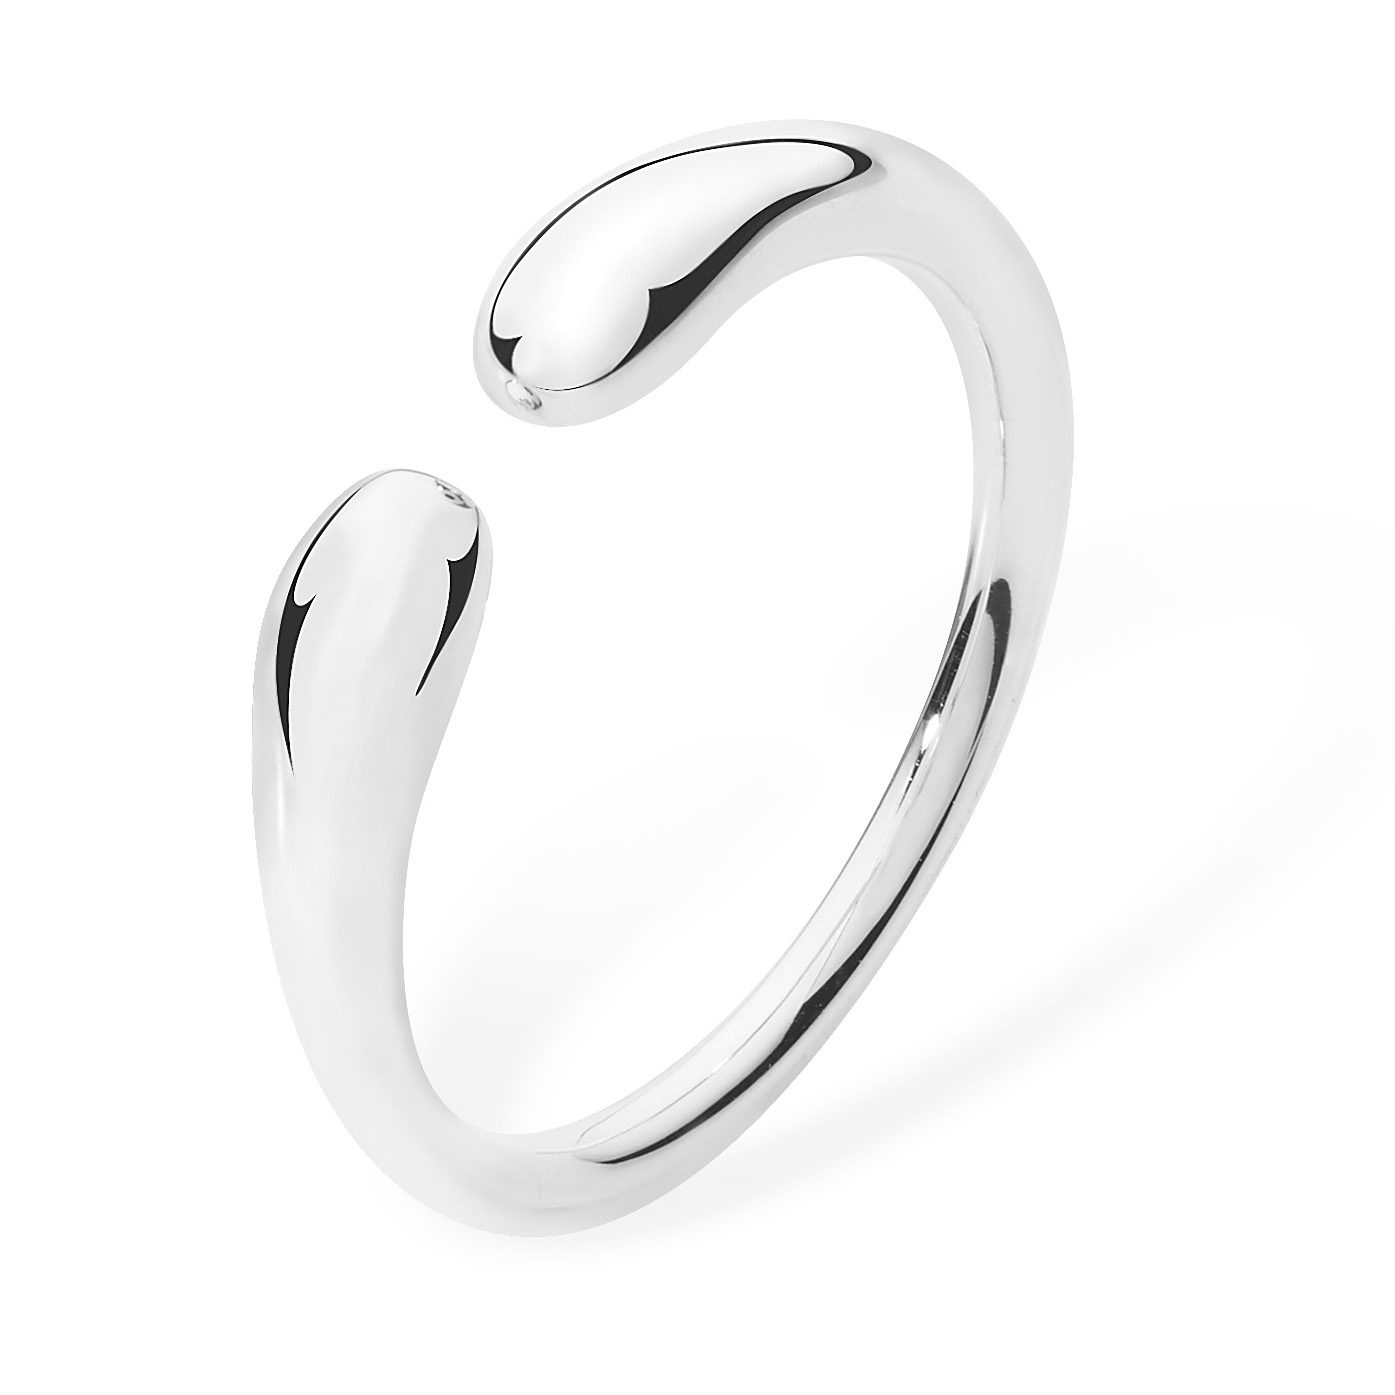 Lucy Q Double Drip Ring